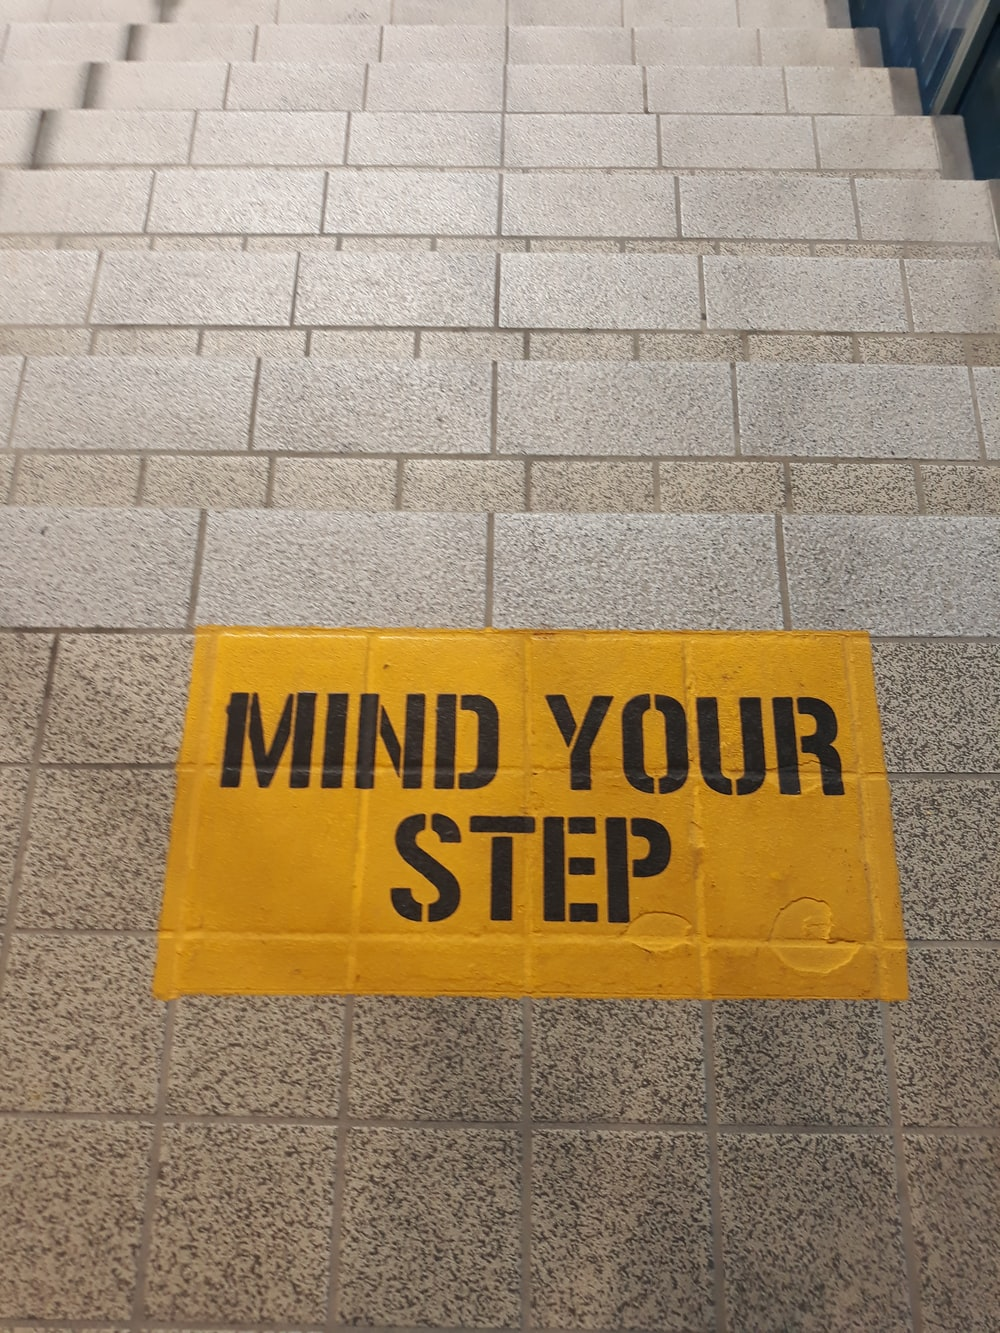 mind your step signage on stairs